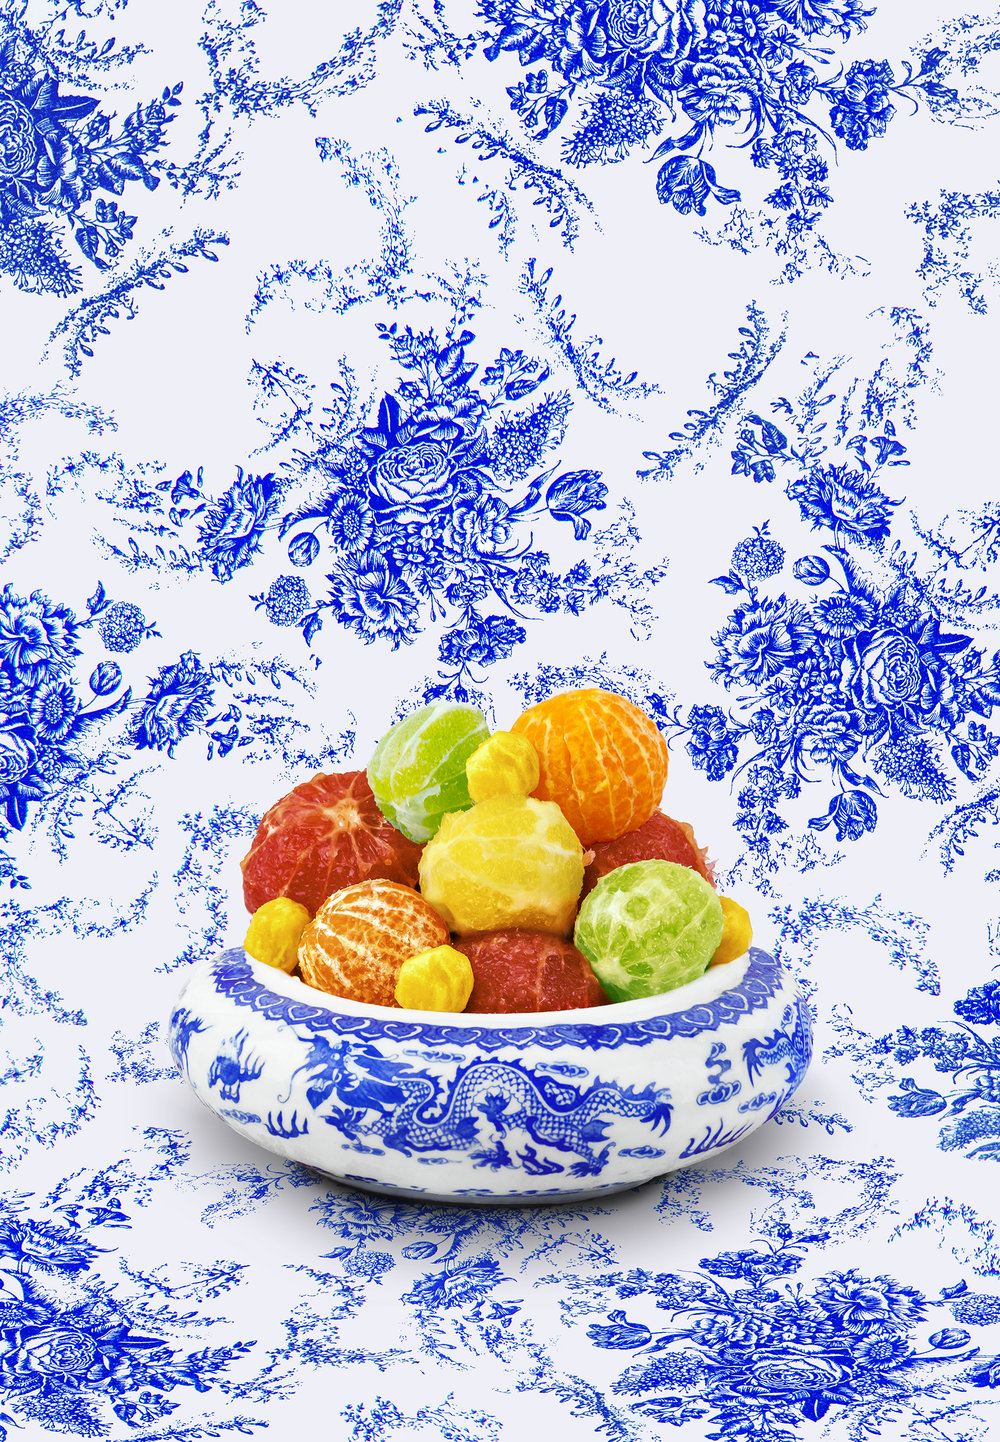 Art by Shellie Zhang - a bowl of peeled citrus against a blue and white patterned background